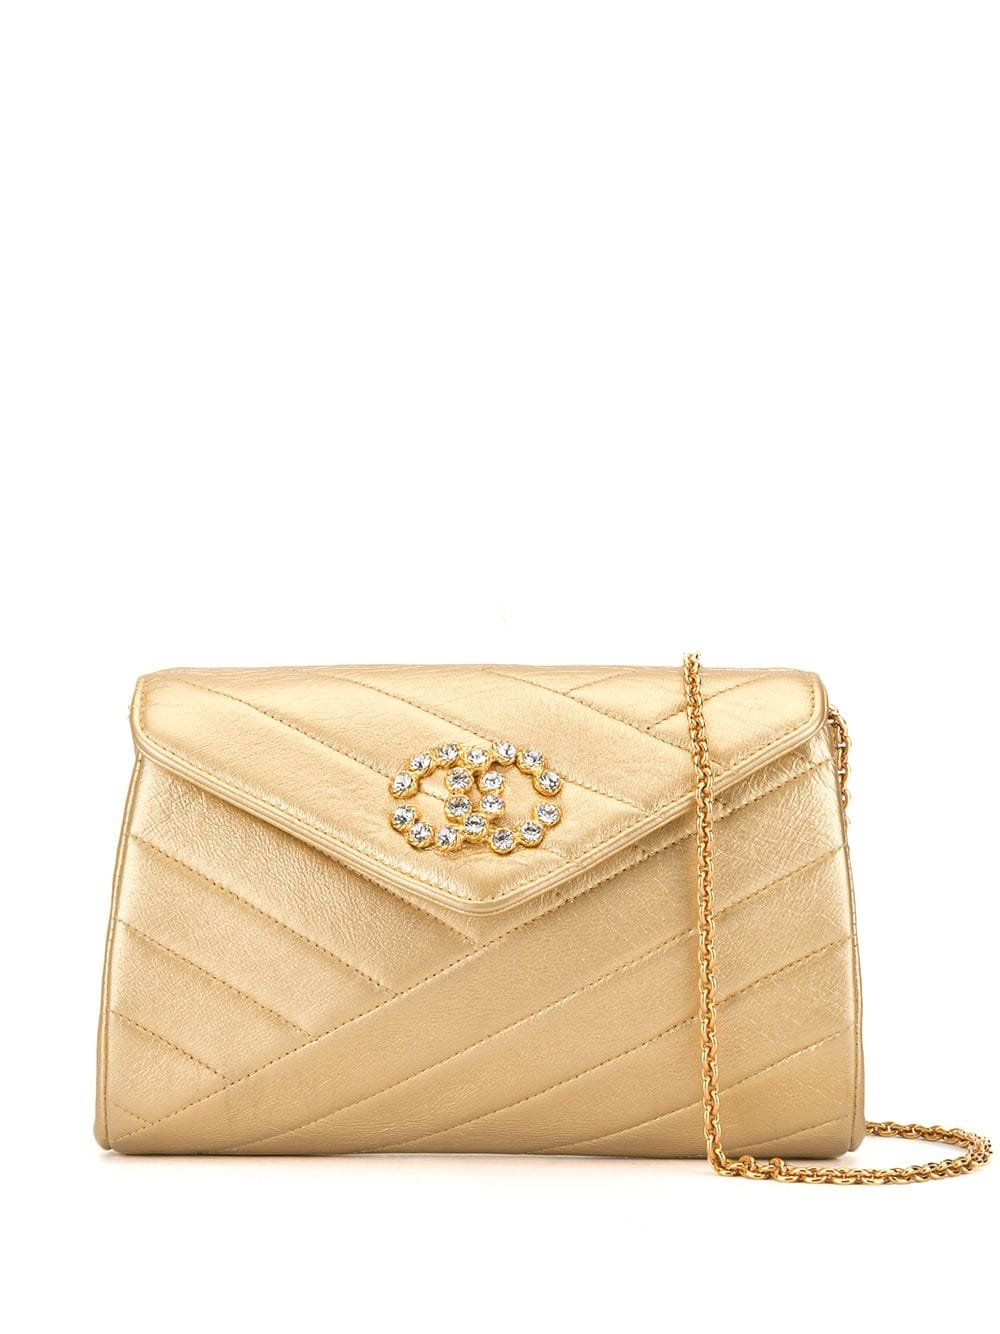 Chanel Pre-Owned 1992s Handtasche - Gold